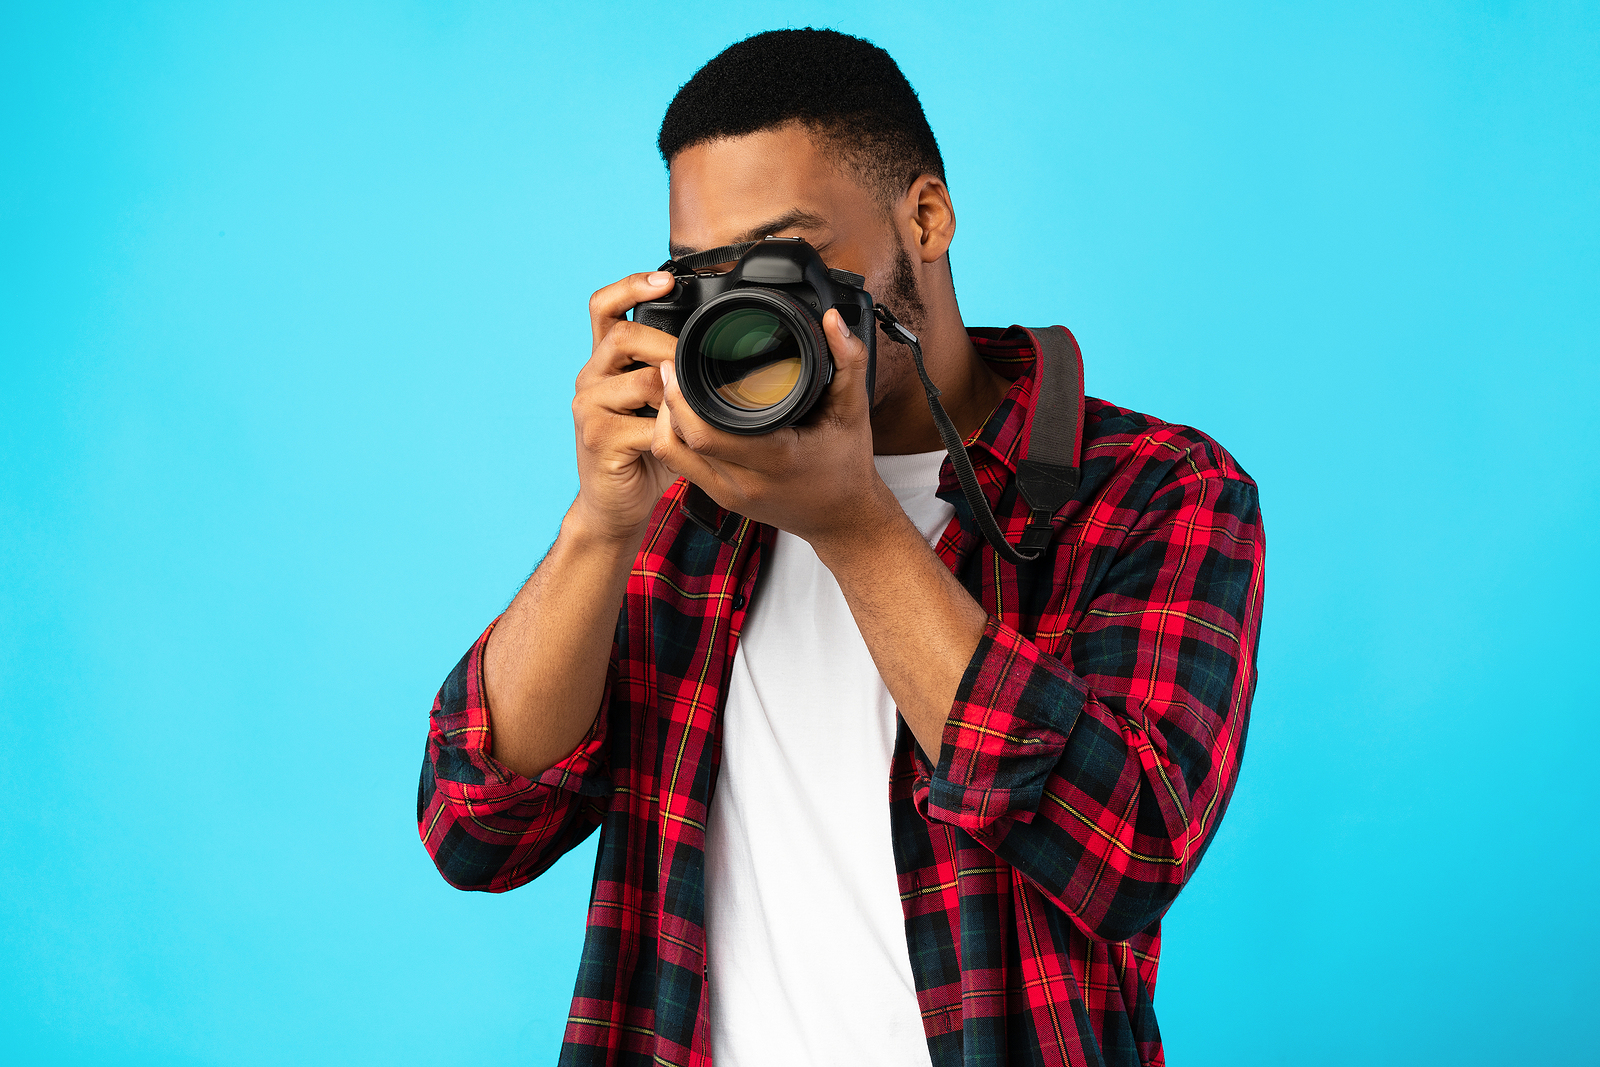 How to Turn a Photography Hobby into a Business